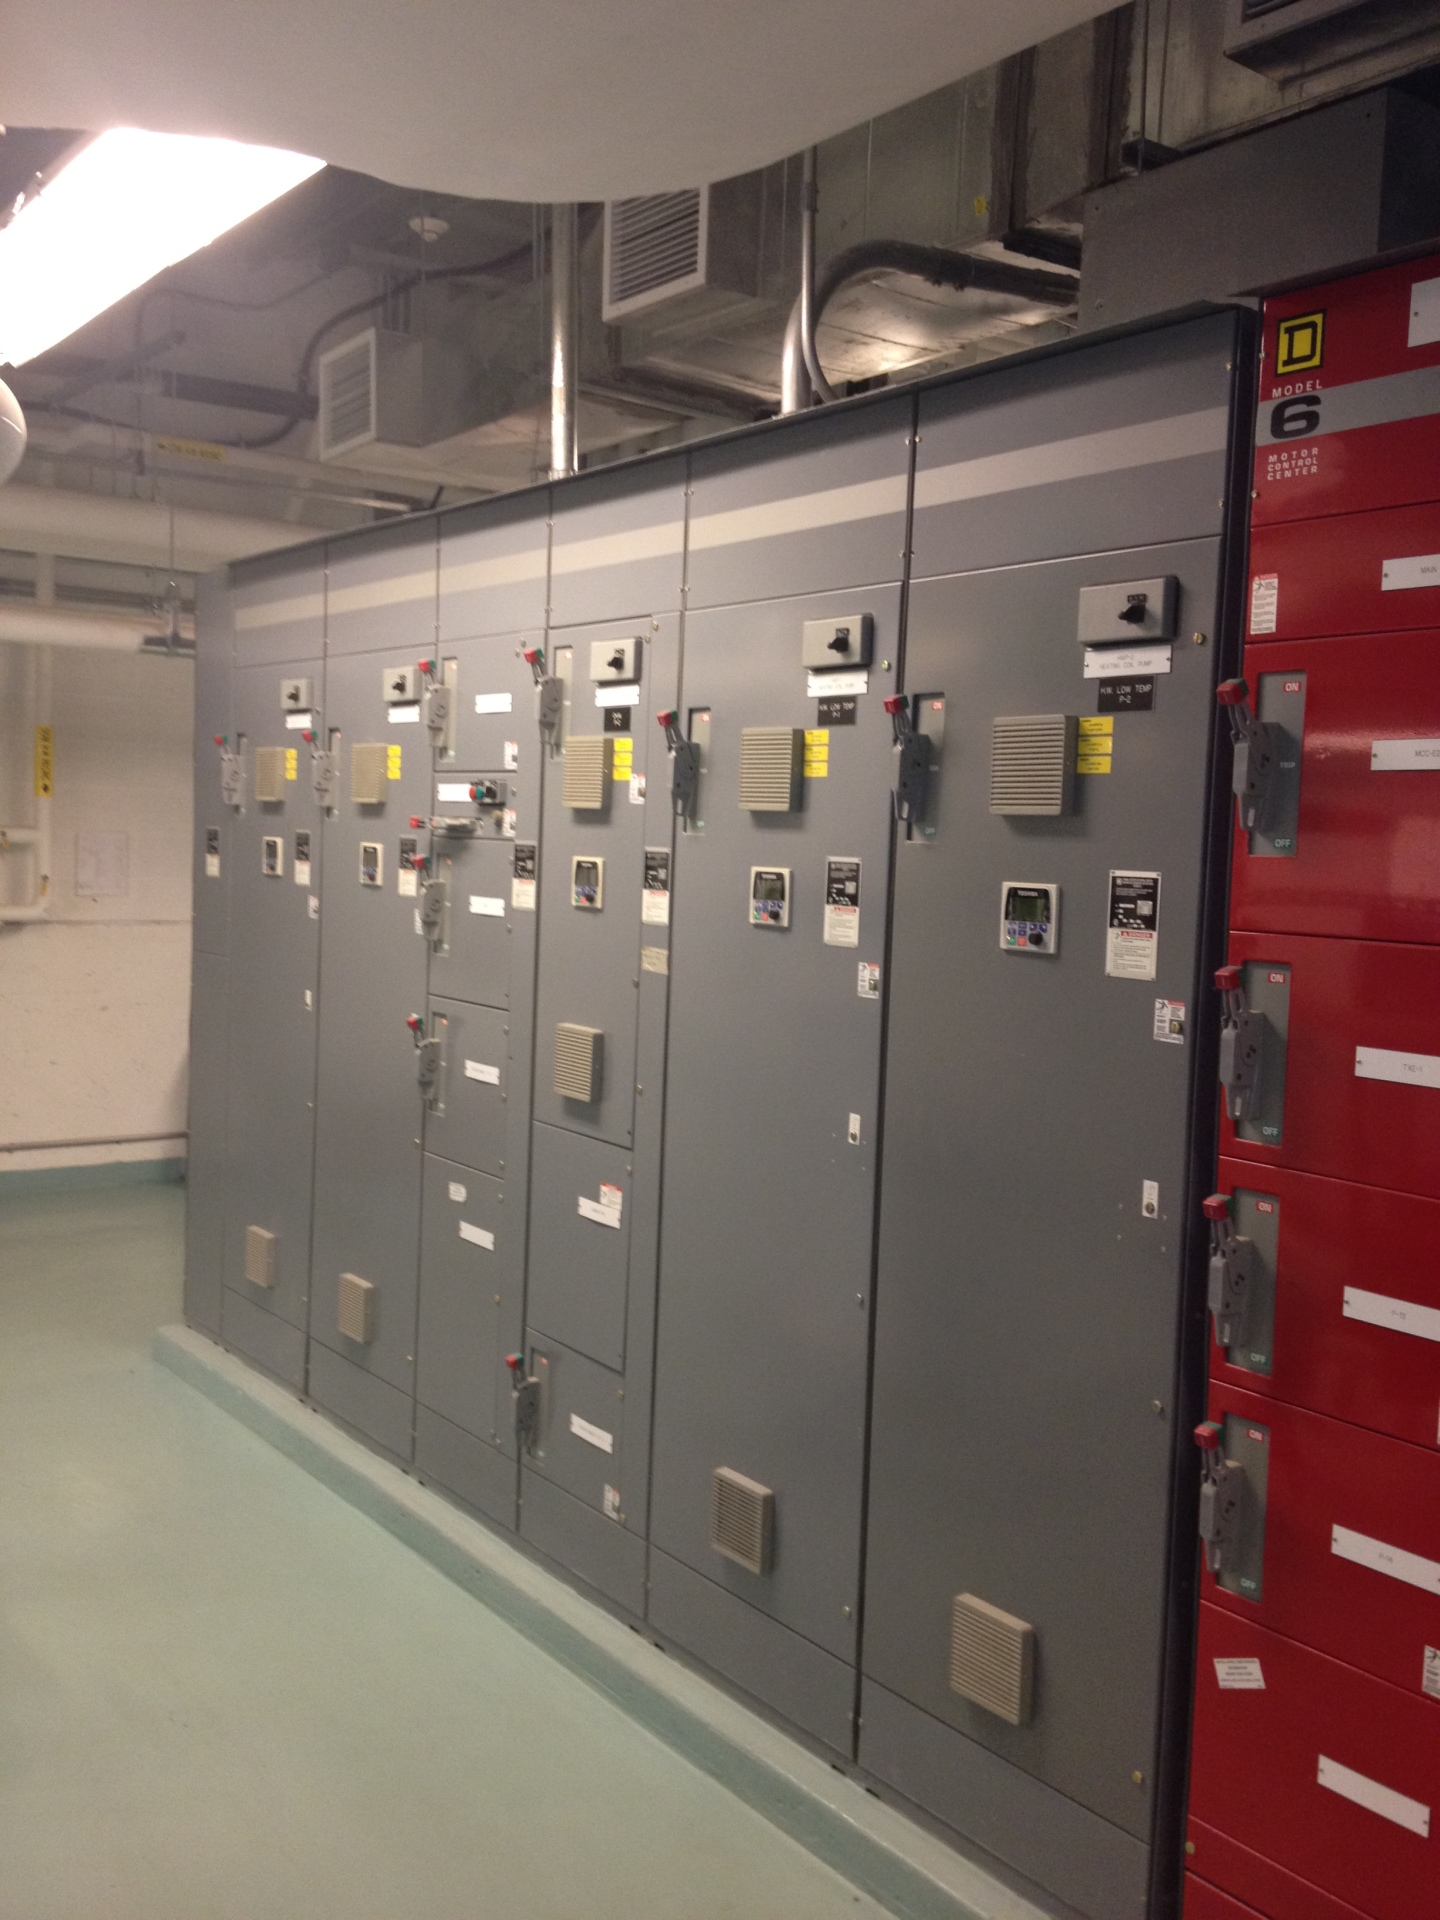 SwitchBoard-Wattcom Electric-Electrician